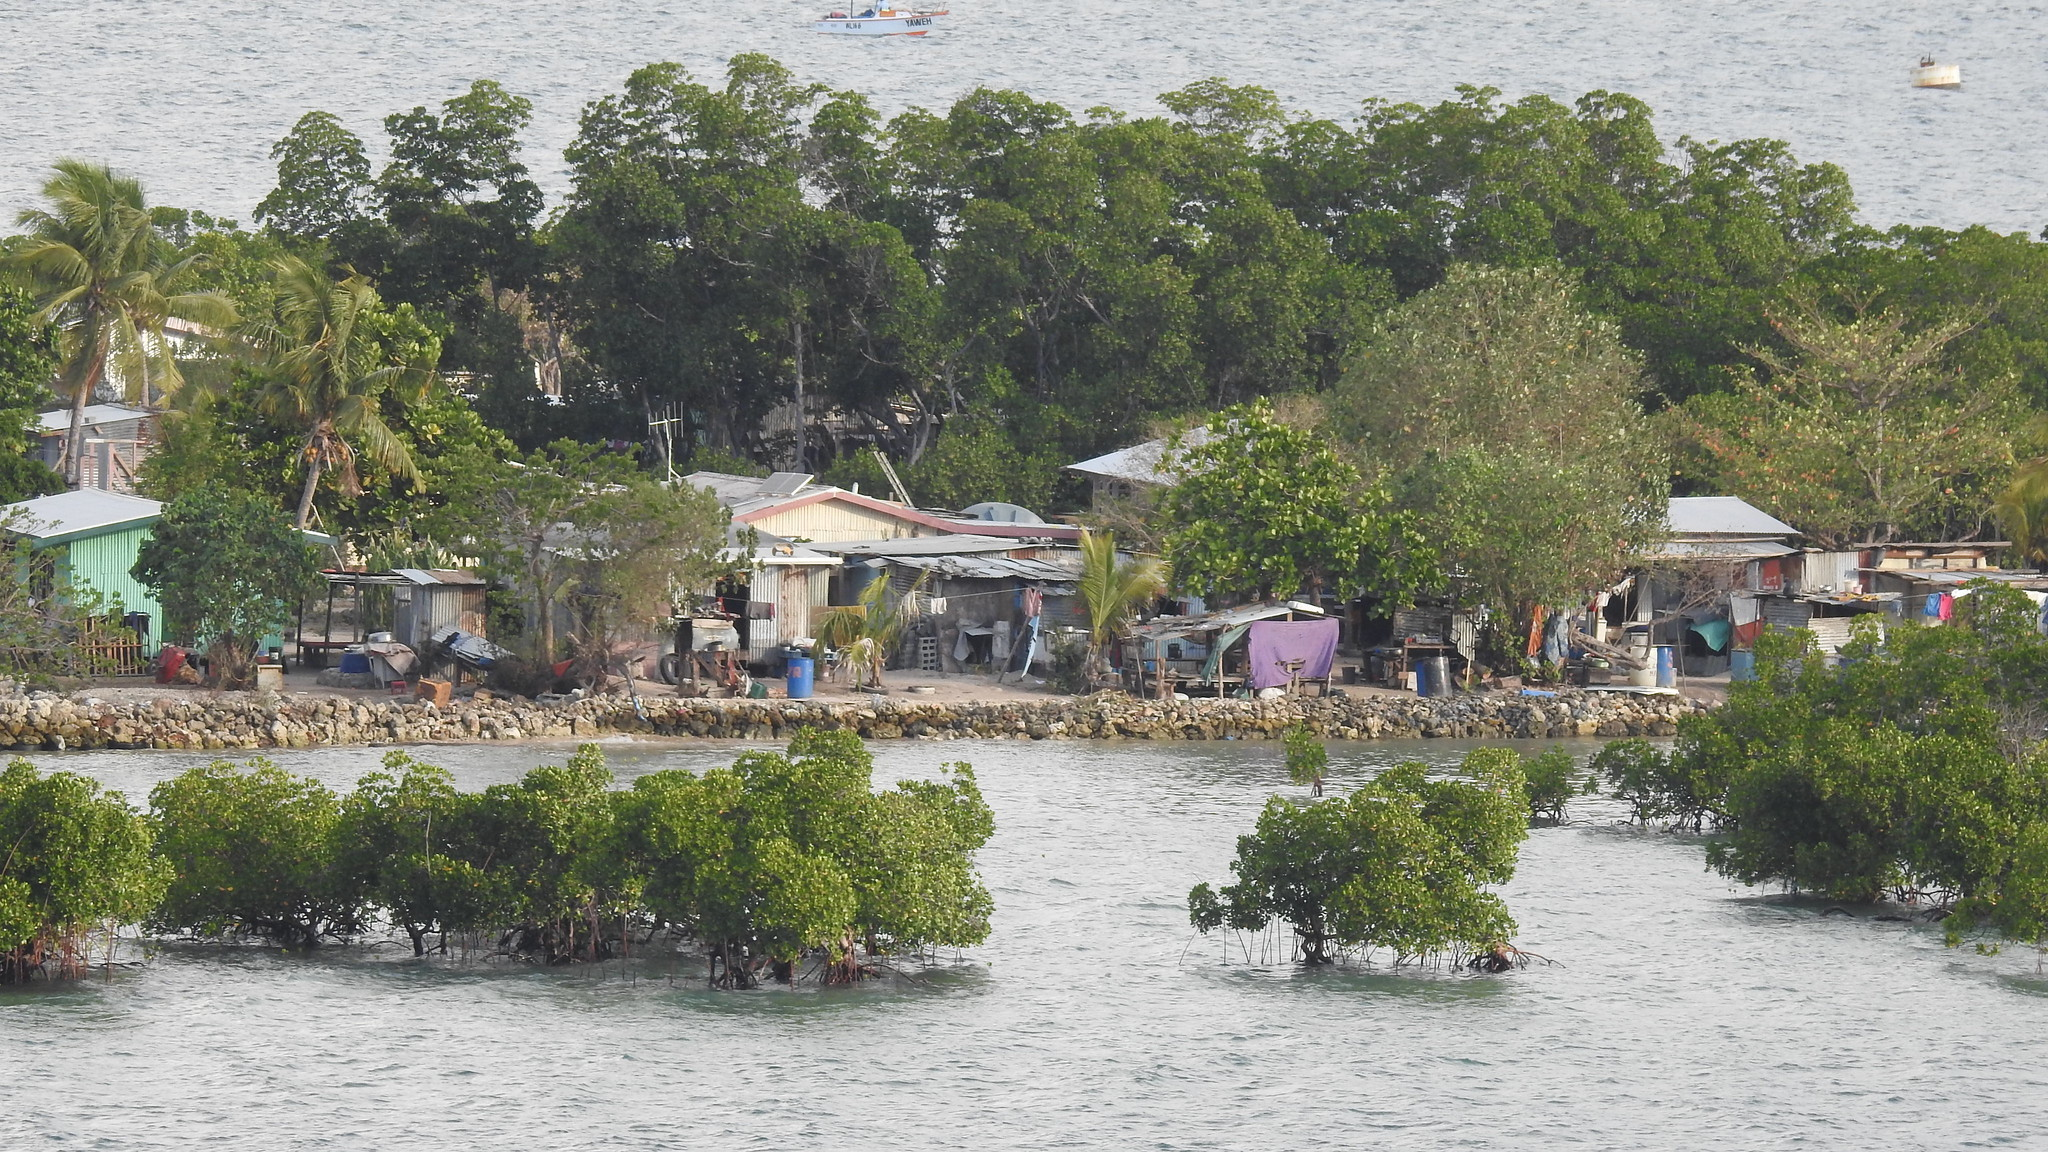 Mangroves protect communities in Fiji from strong waves and winds.